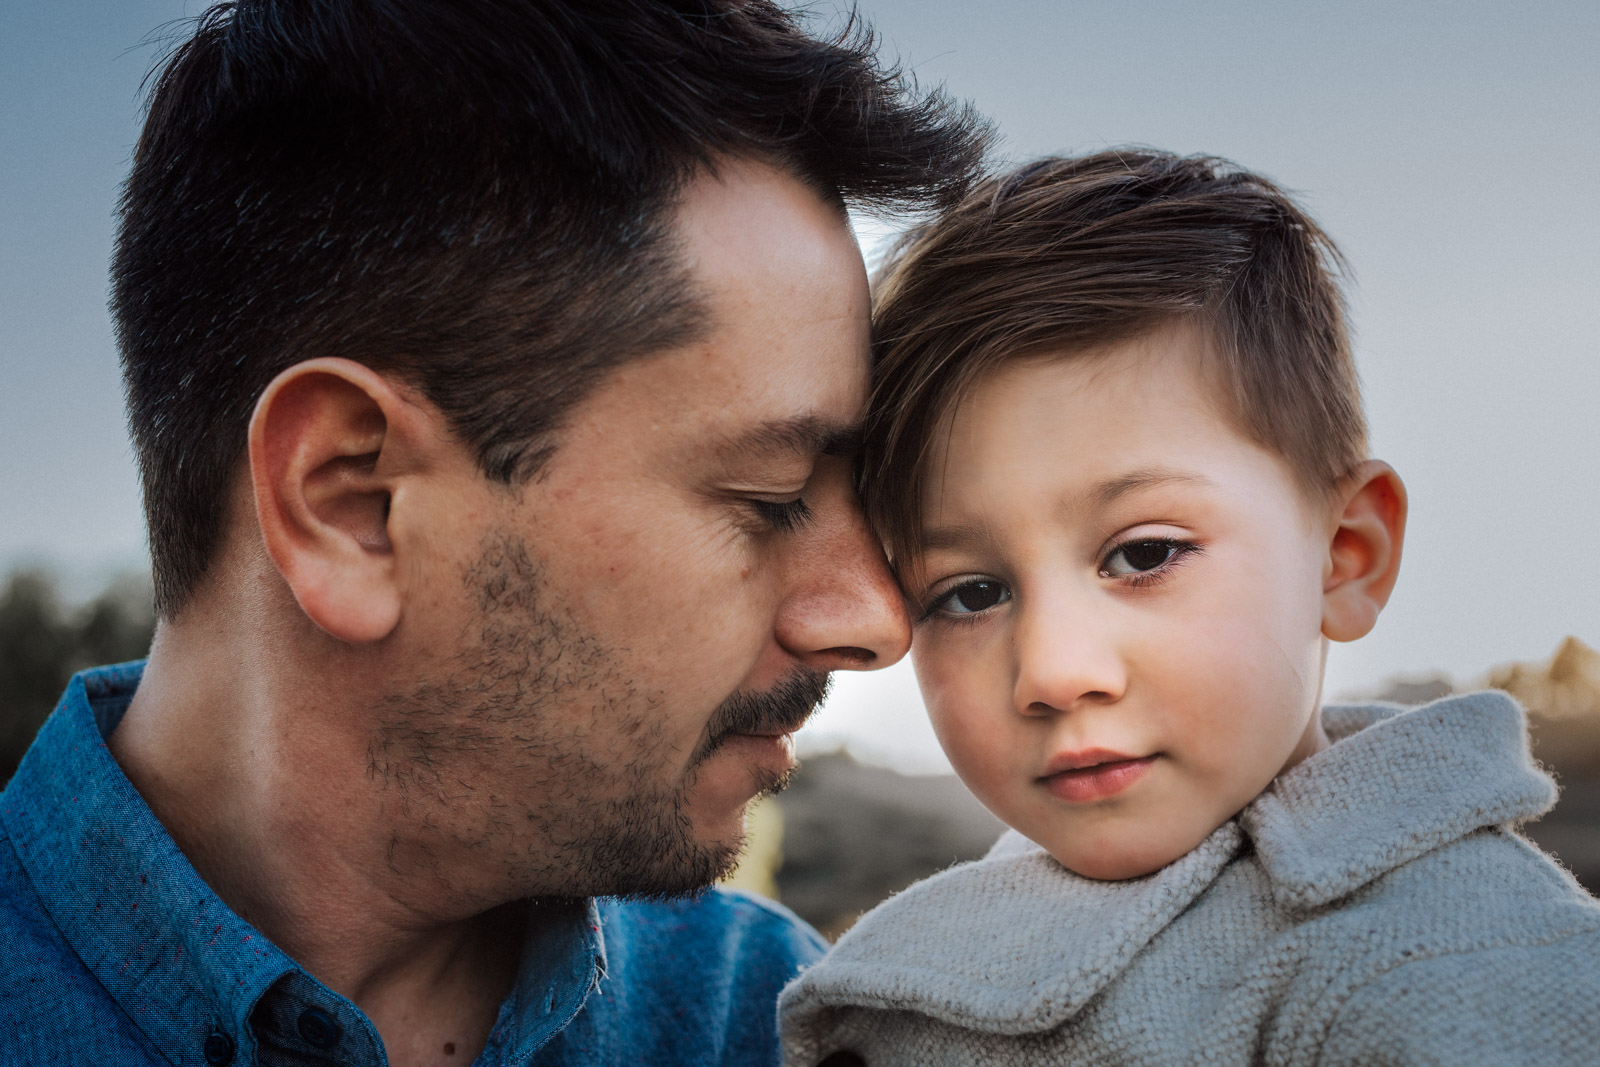 How to photograph special needs children - A father and son share a moment